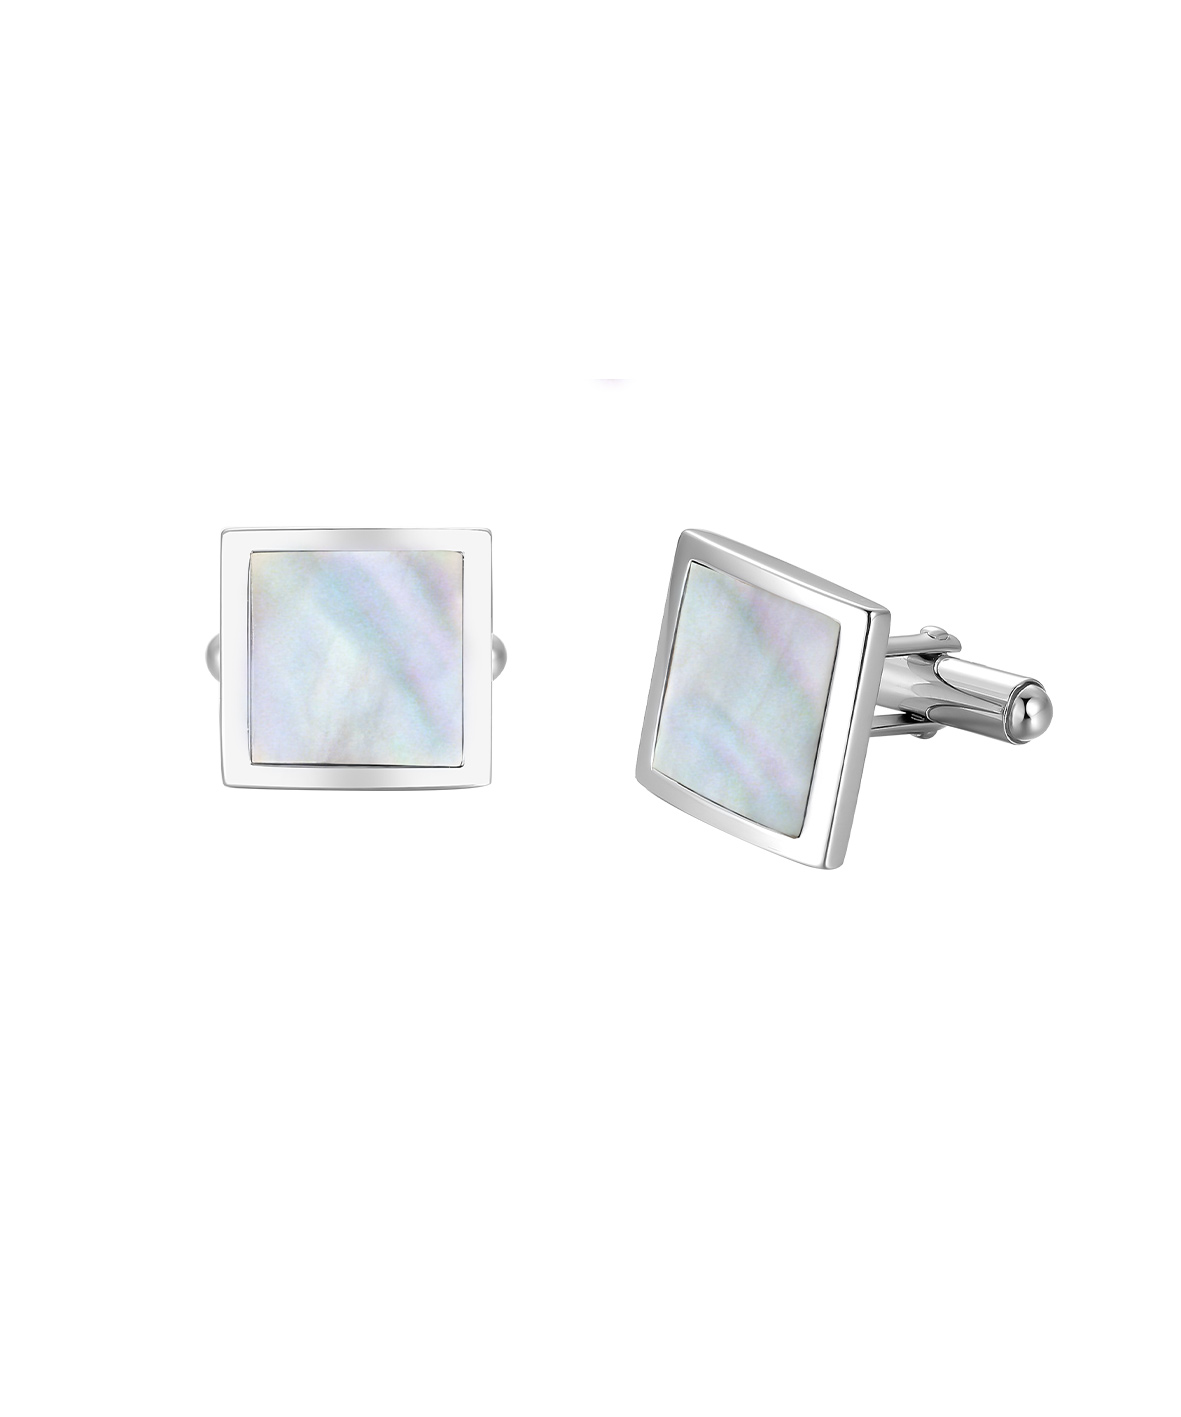 Jersey Ormer Square Cufflinks